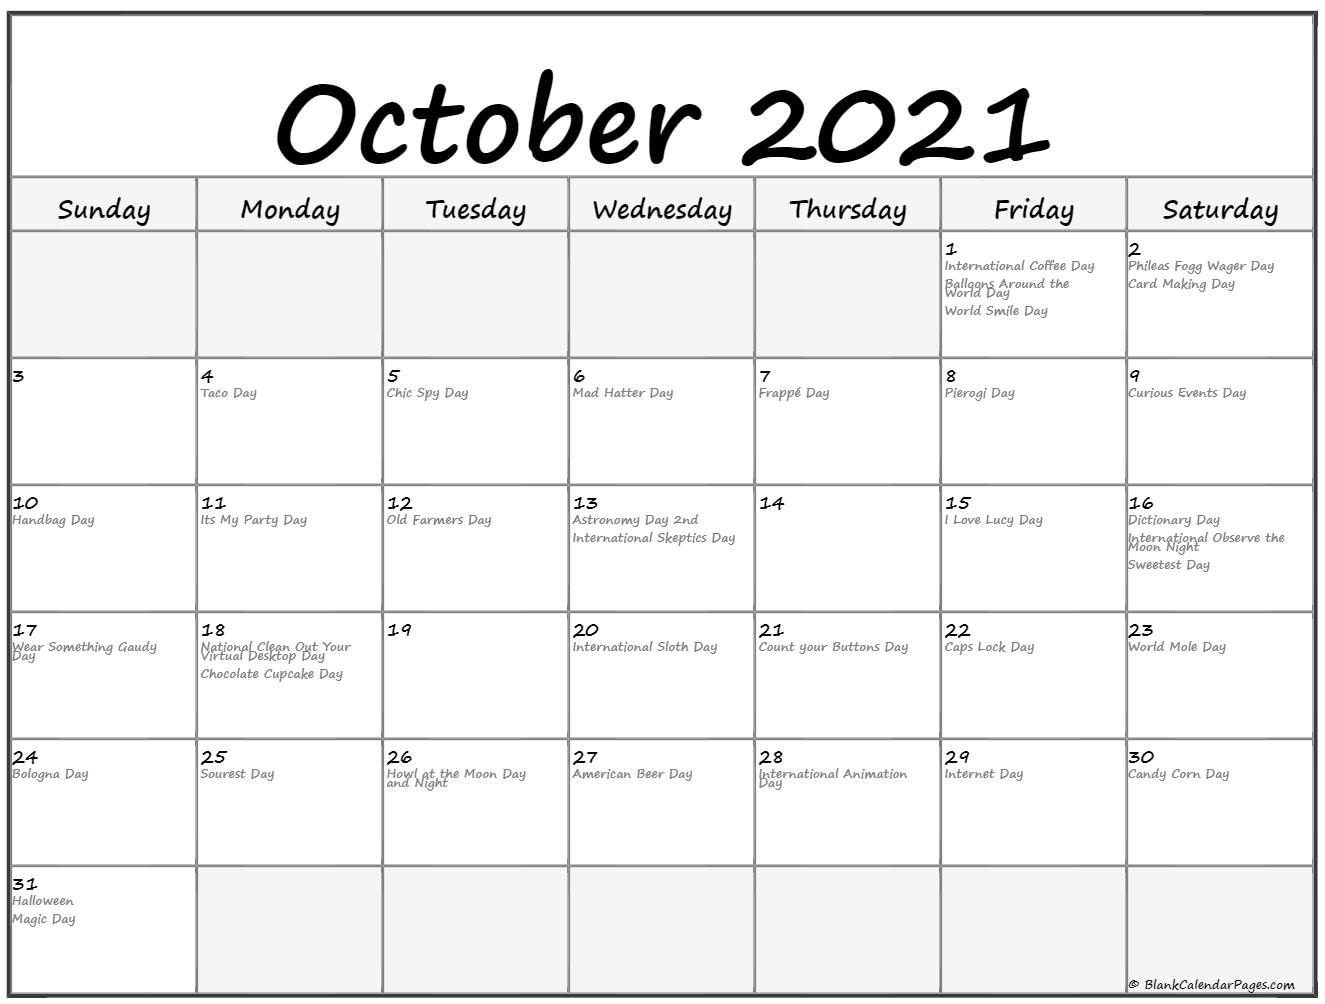 October 2020 funny holidays calendar